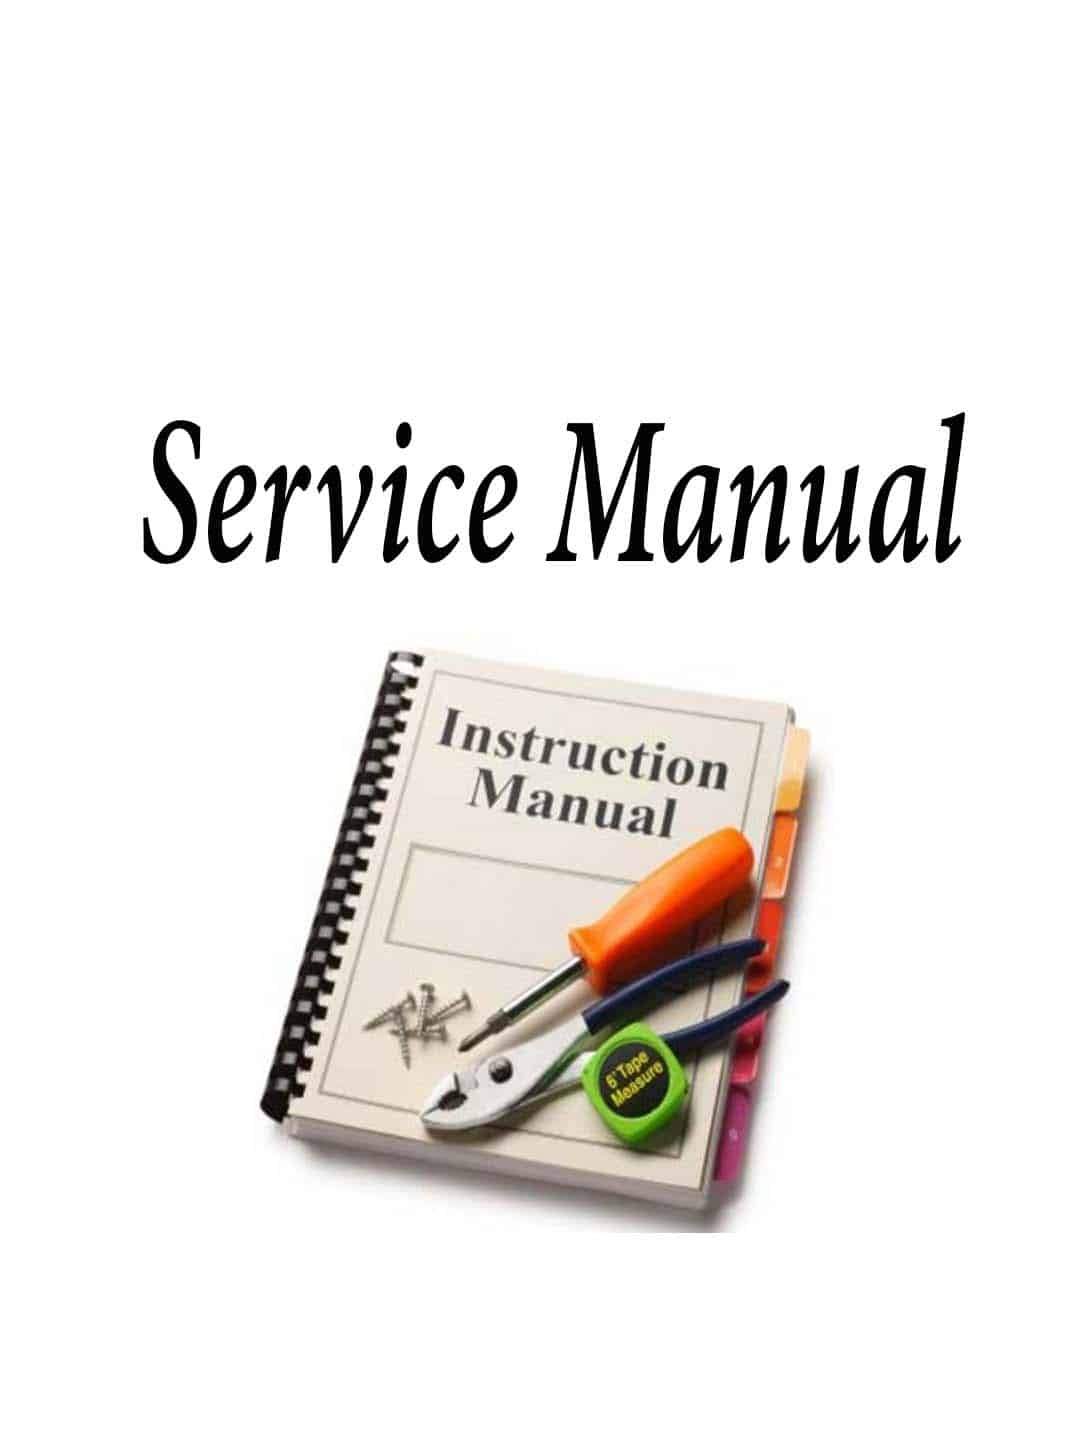 SM78350 - Midland Service Manual For 78-350